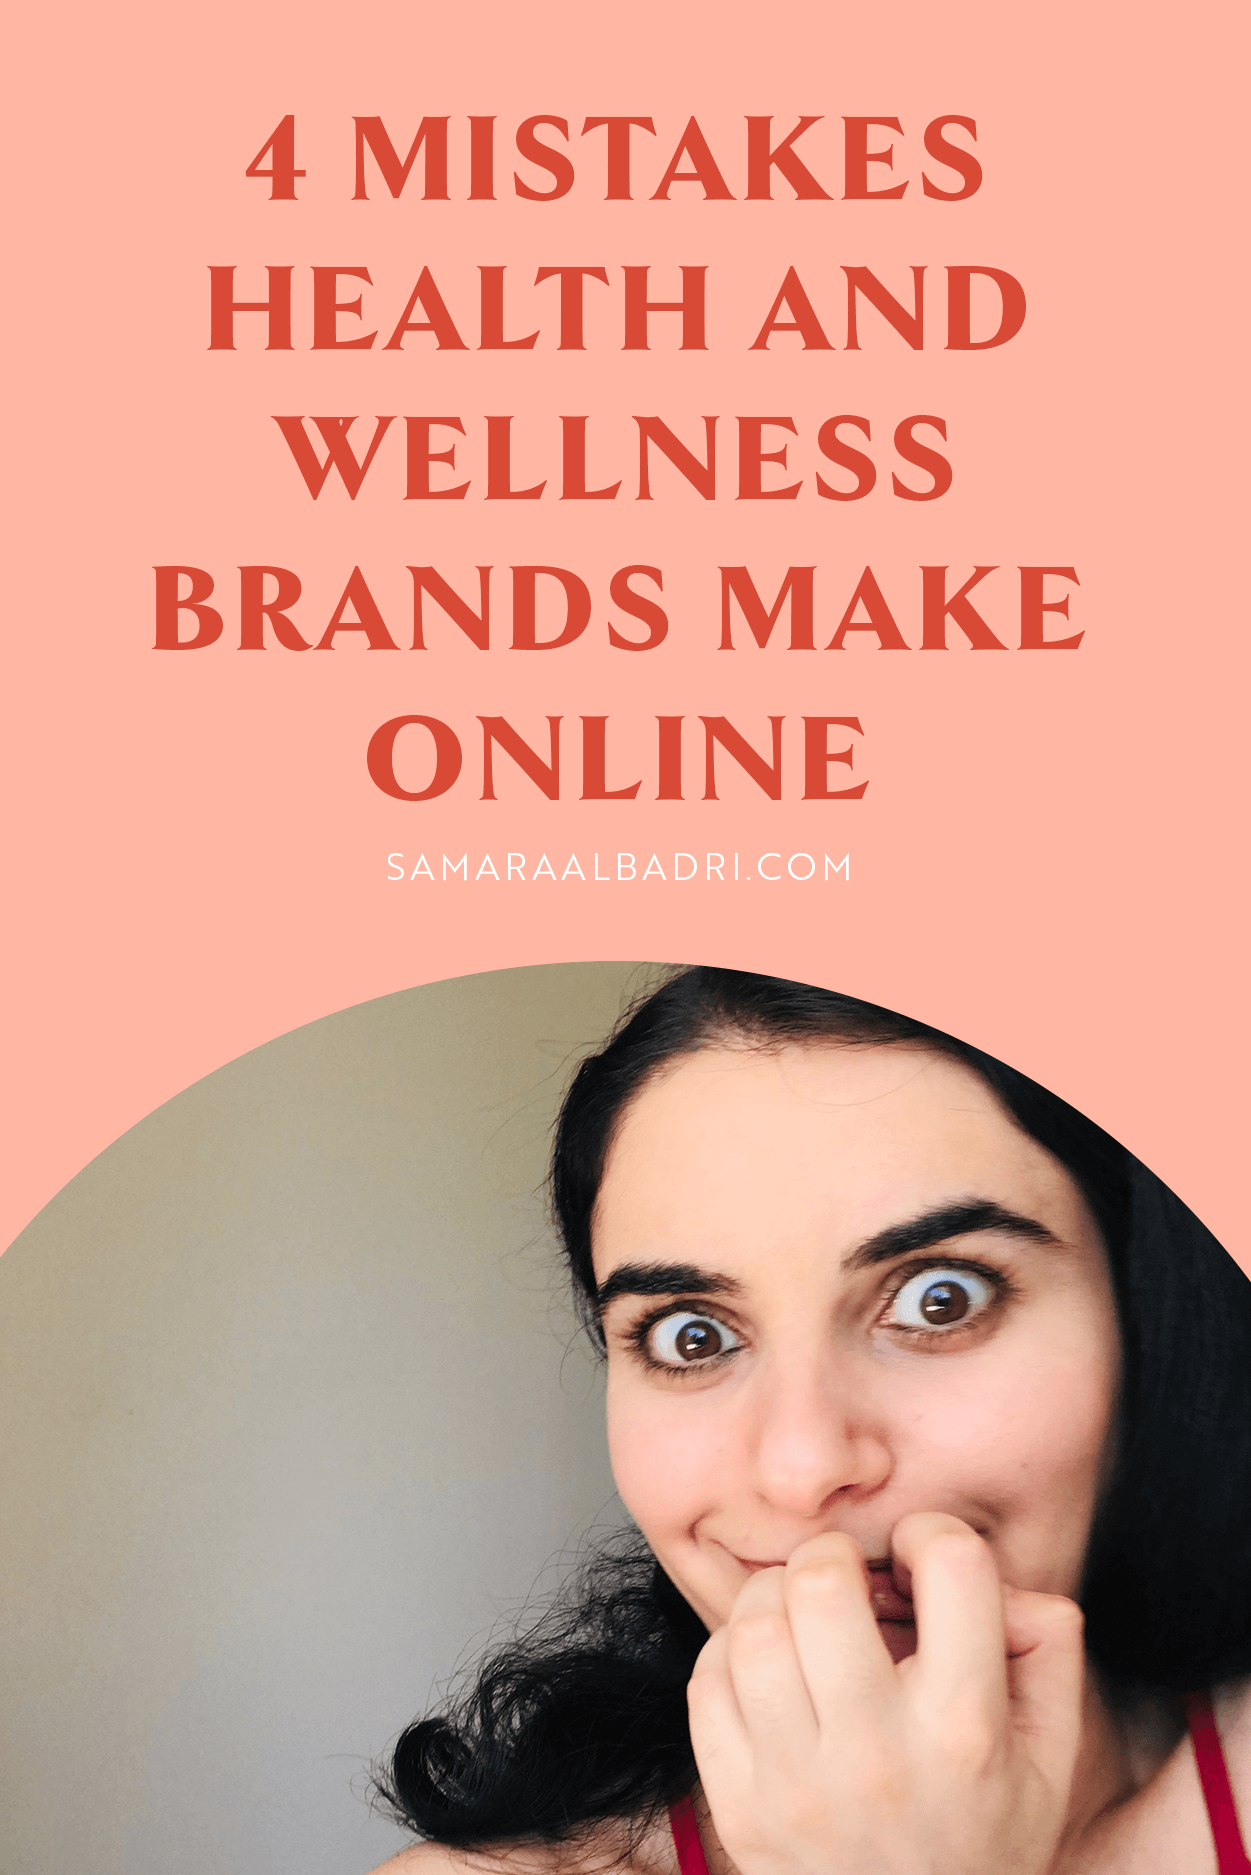 4 Mistakes Health and Wellness Brands Make Online